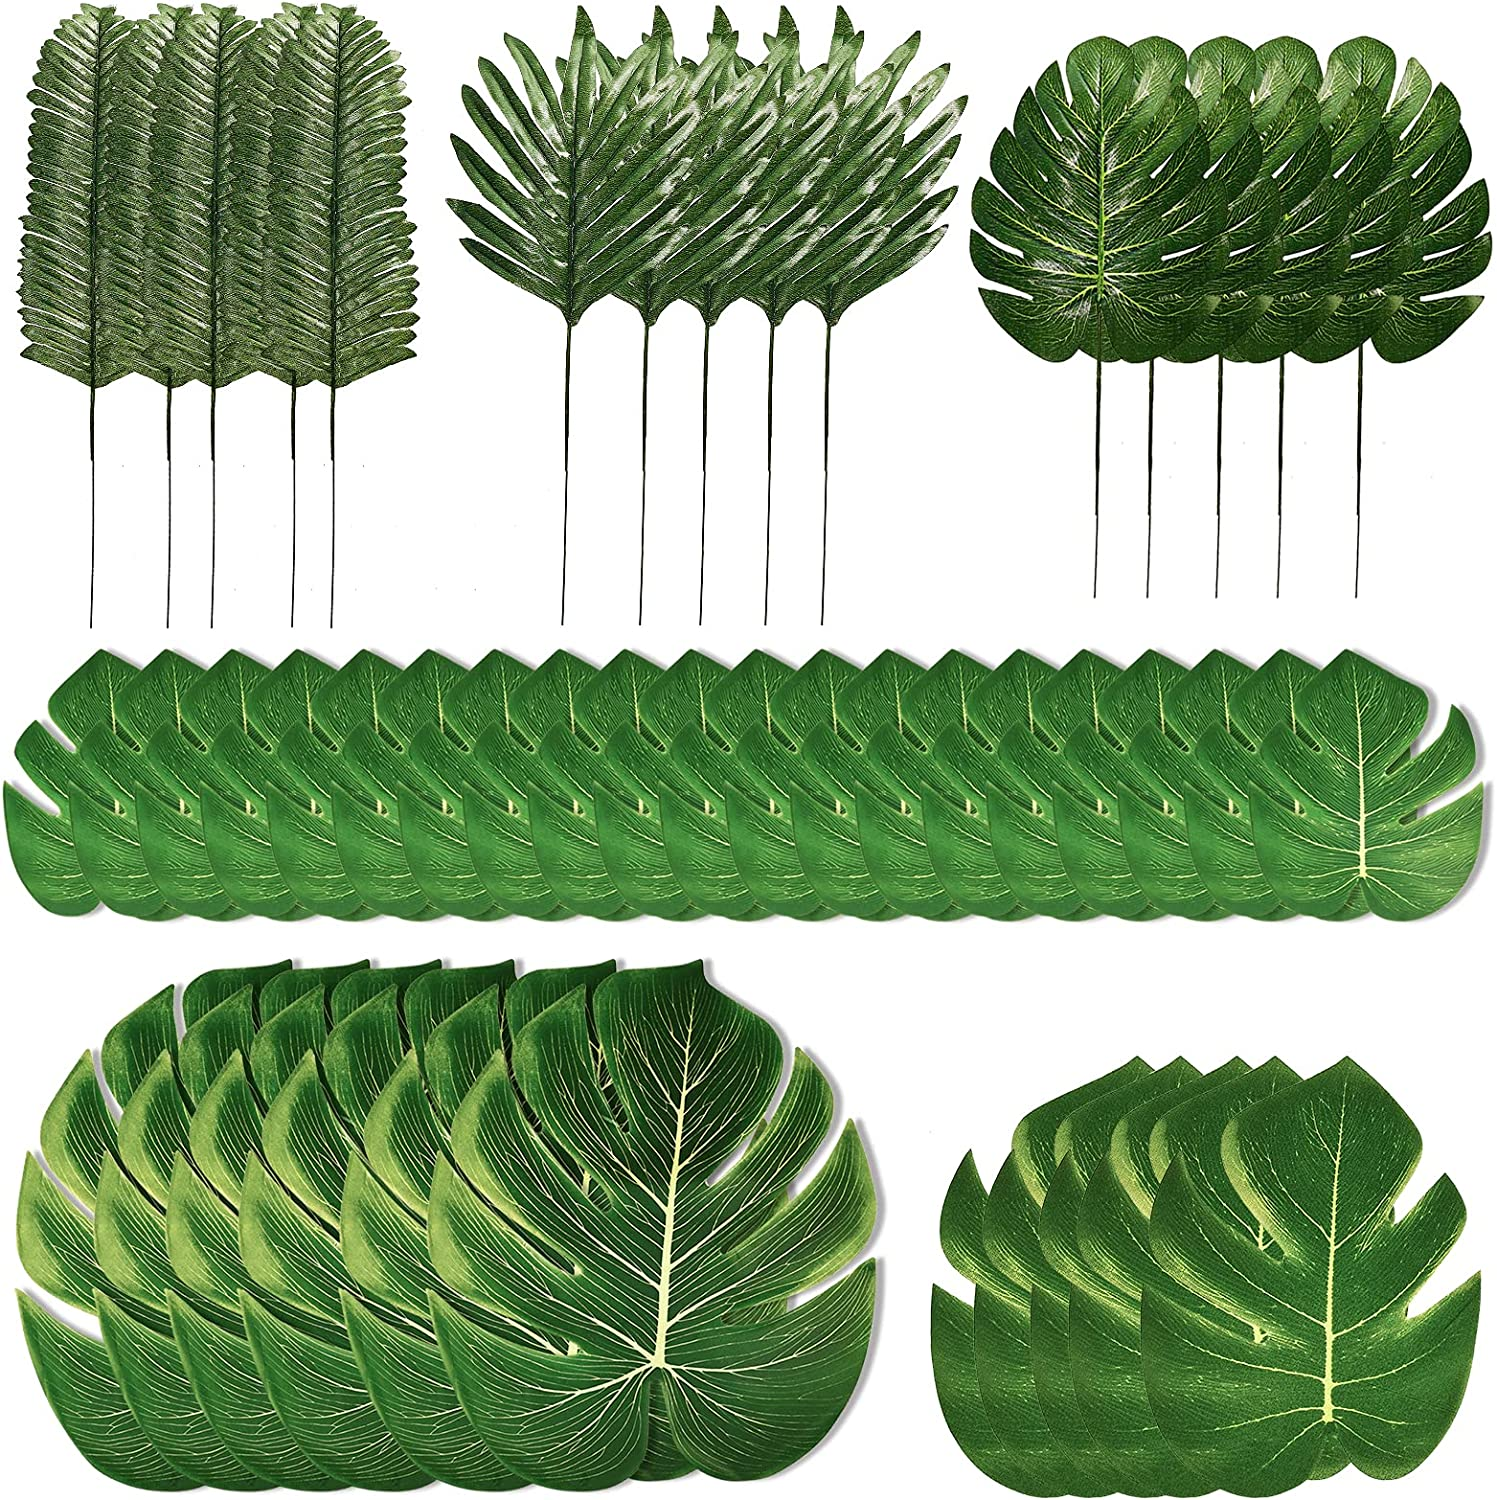 PartyWoo Palm Leaves, 90 pcs Fake Leaves, Artificial Leaves, Hawaiian Party Decorations, Luau Birthday Party Decorations, Fiesta Party Decorations, Tropical Party Supplies, Flamingo Party Supplies